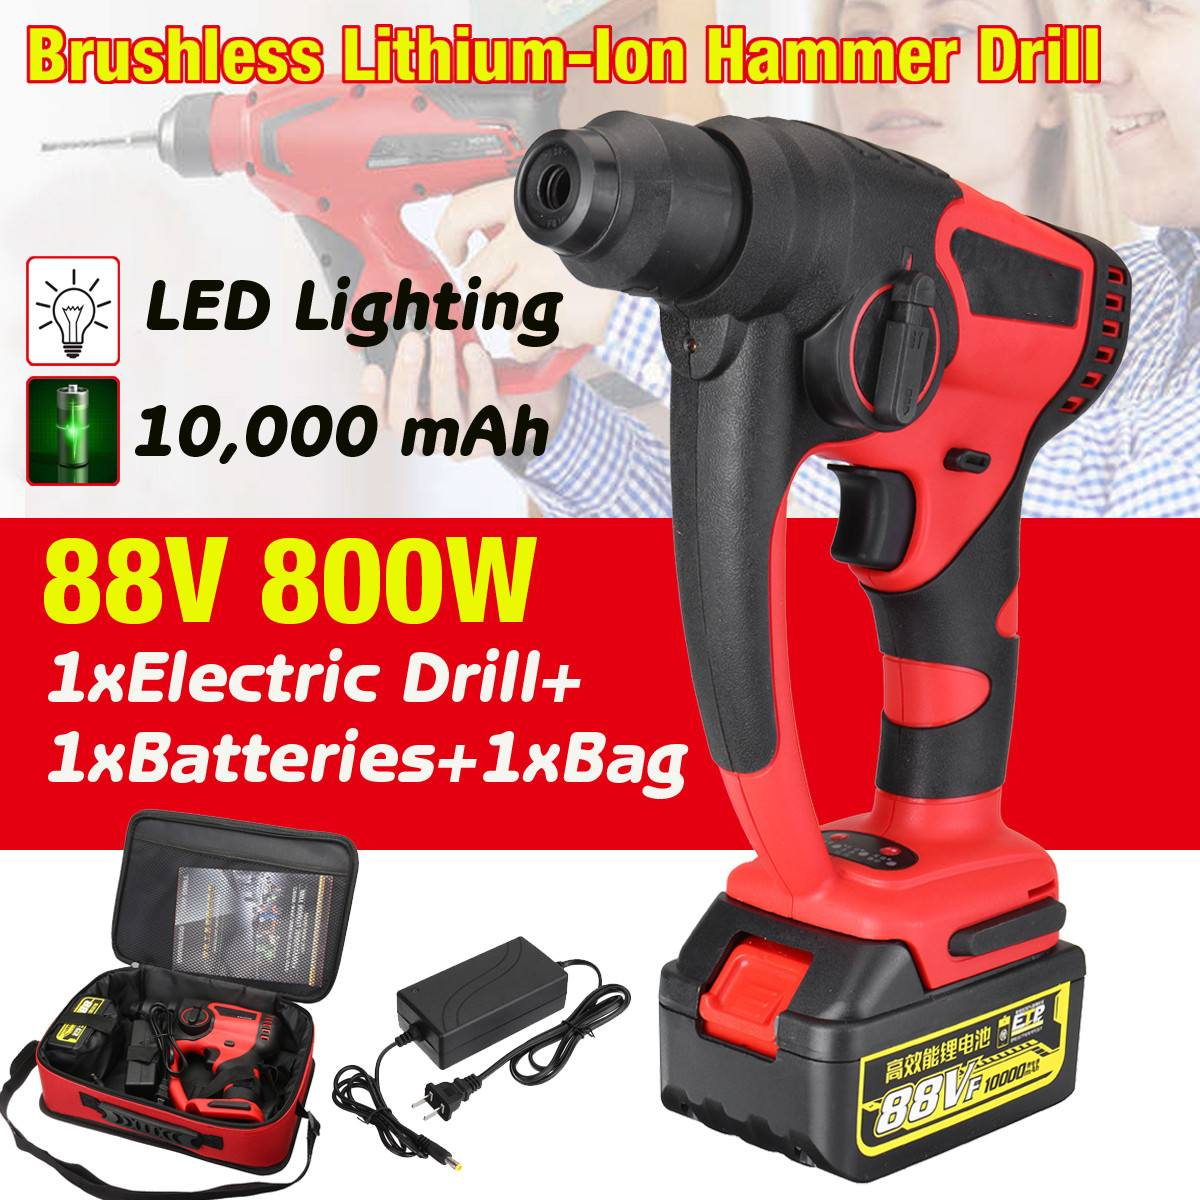 88v 800w 10000mAh Electric Hammer Brushless Cordless Lithium-Ion Hammer Drill With 1 Battery  Tools  Impact Drill